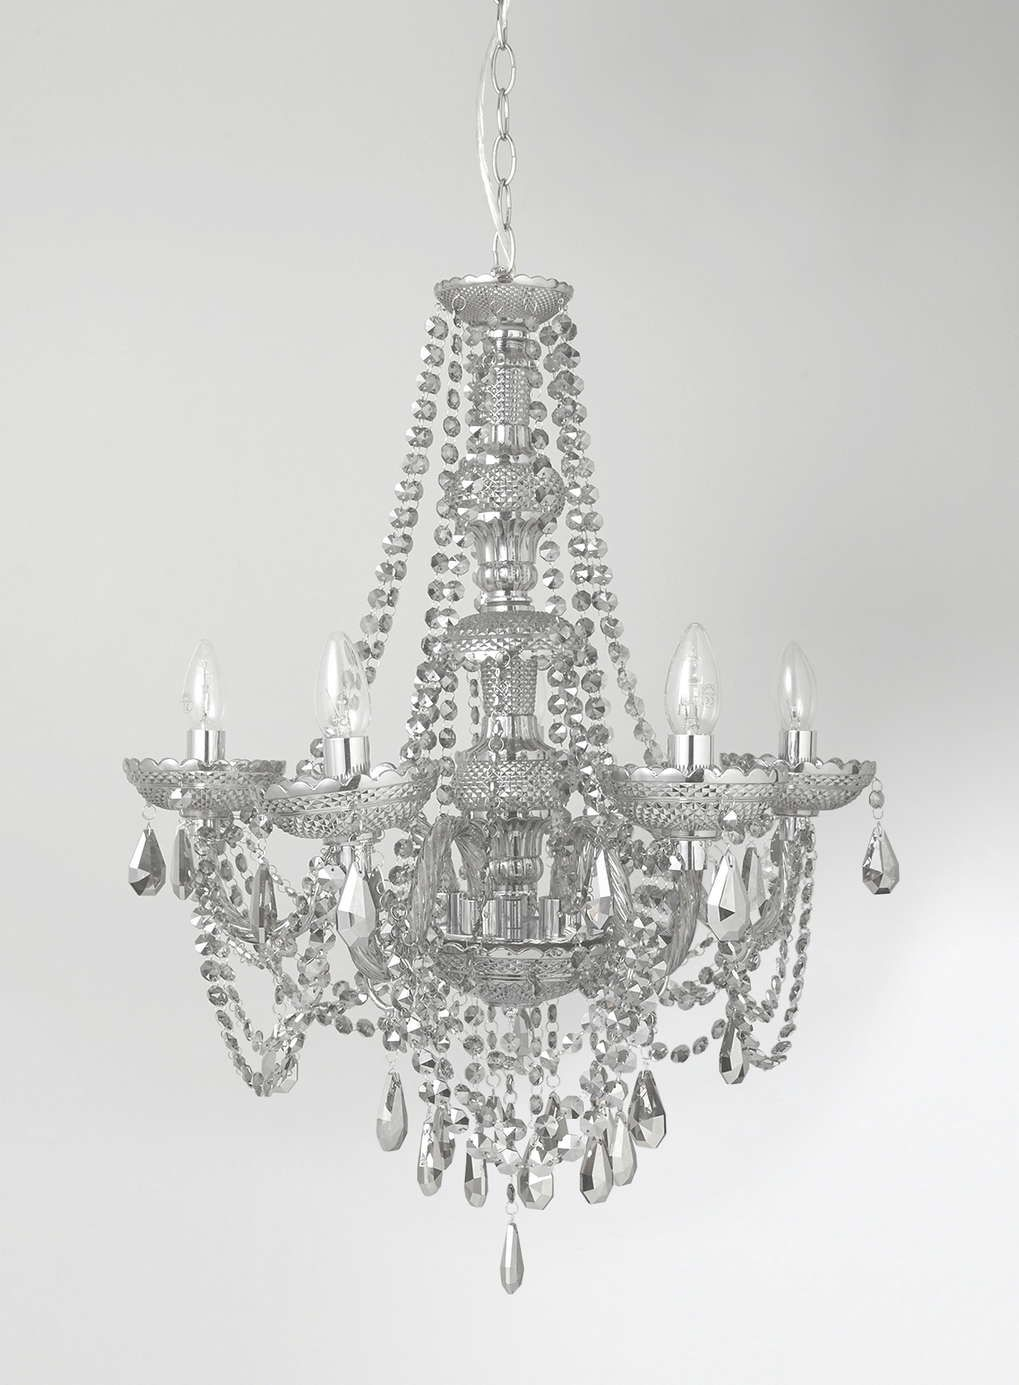 Bathroom Chandeliers Bhs. Bhs Chandelier With Bathroom Chandeliers ...